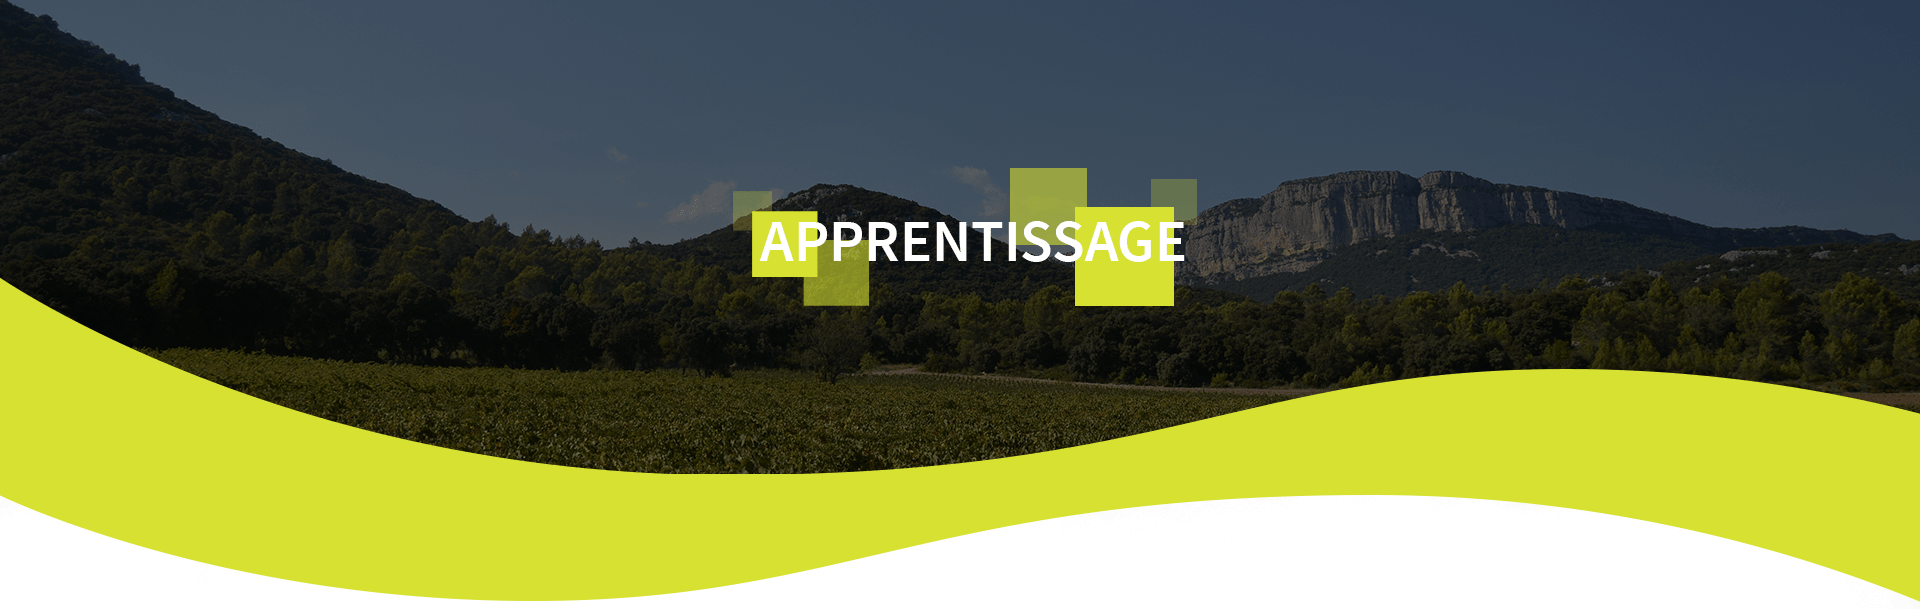 Occitagri - Formation Agricole Occitanie - Apprentissage bg-top_2-min